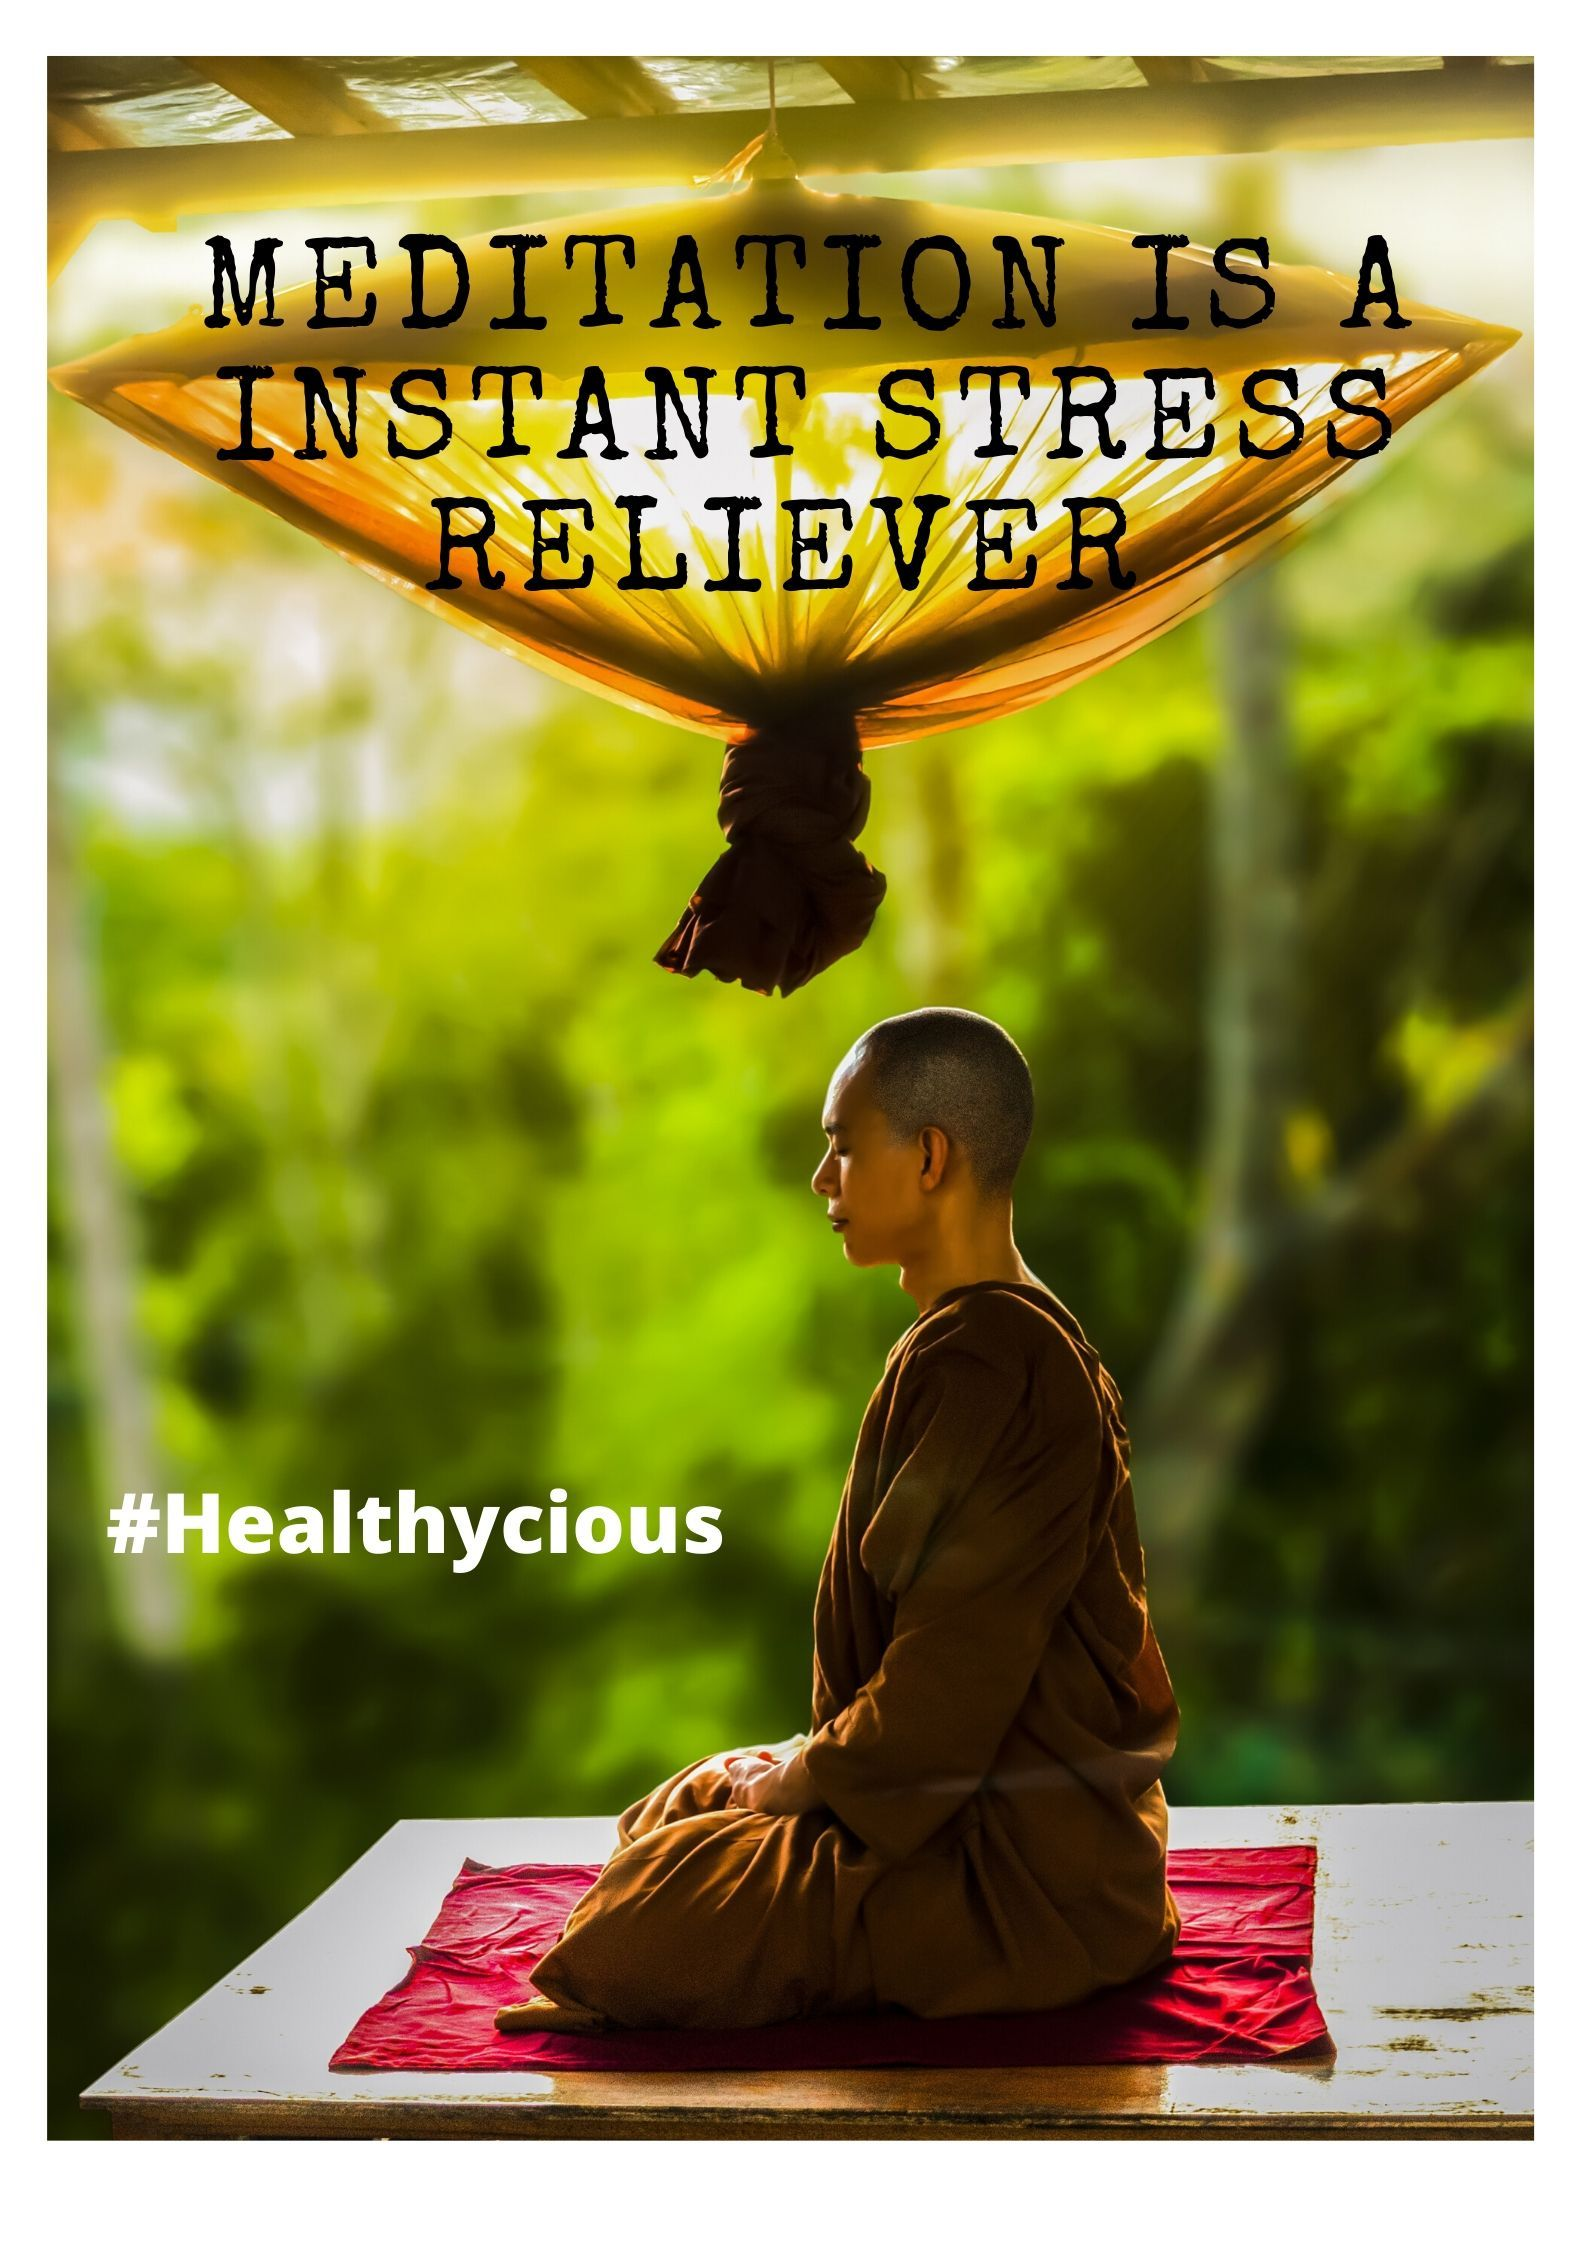 Practical Meditation Tips 1Sit In Comfortable Posture 2Morning Meditation Is More Effective 3Inhale  Exhale Deeply 4Scan Your Body 5Open Your Eyes Gently With Smiling Fac...